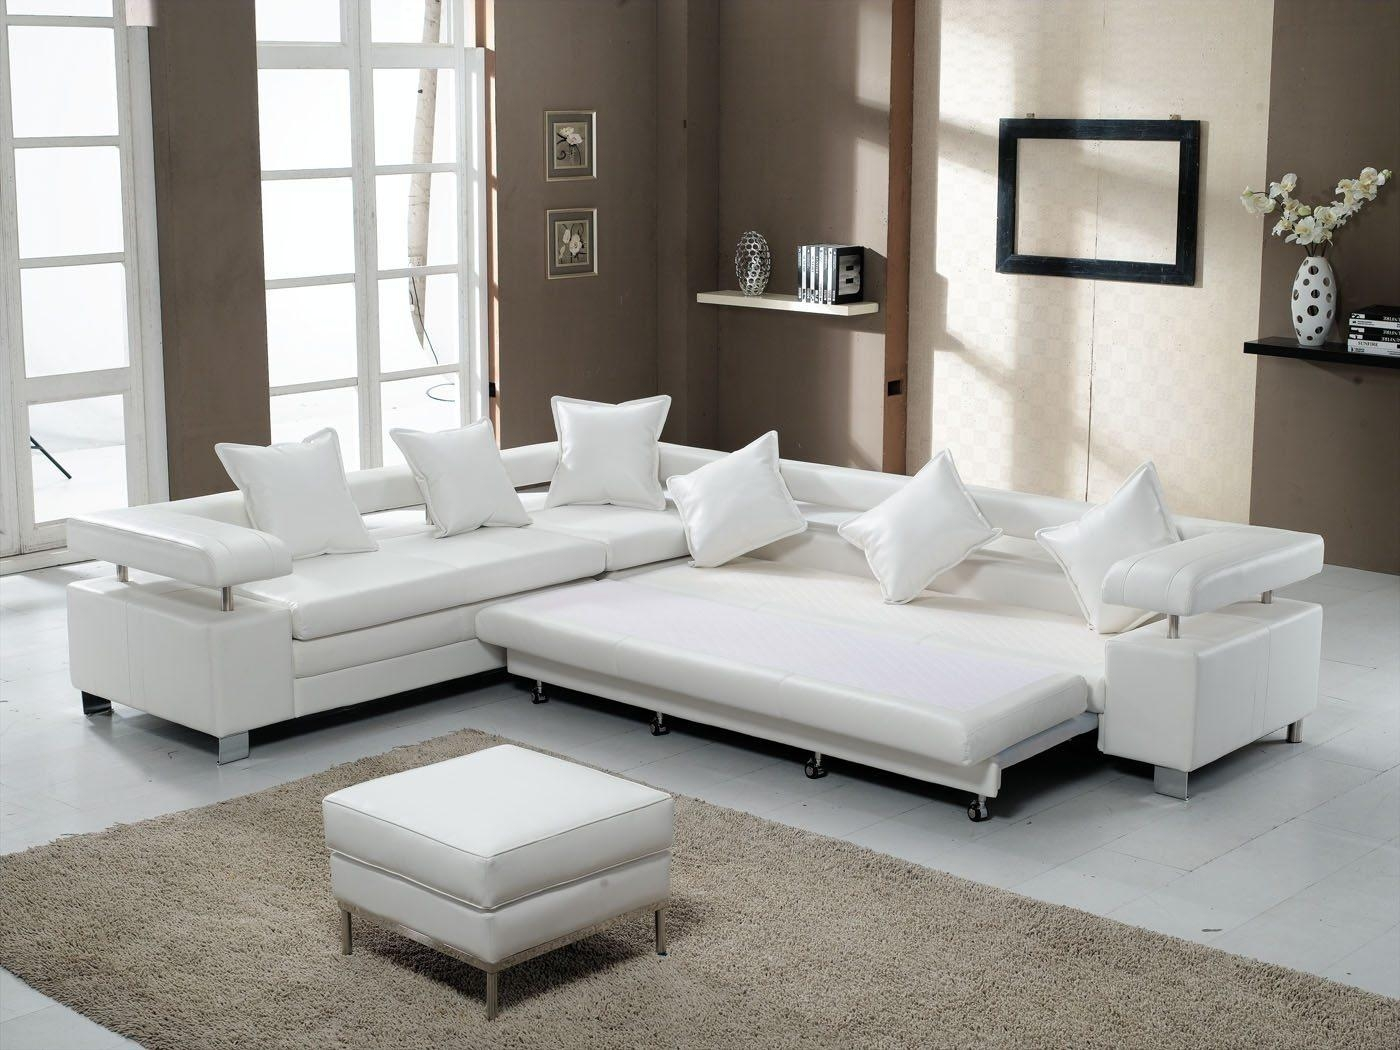 Interior: Best Collection White Sectional Sofa For Excellent Intended For Wide Sectional Sofa (Image 13 of 20)